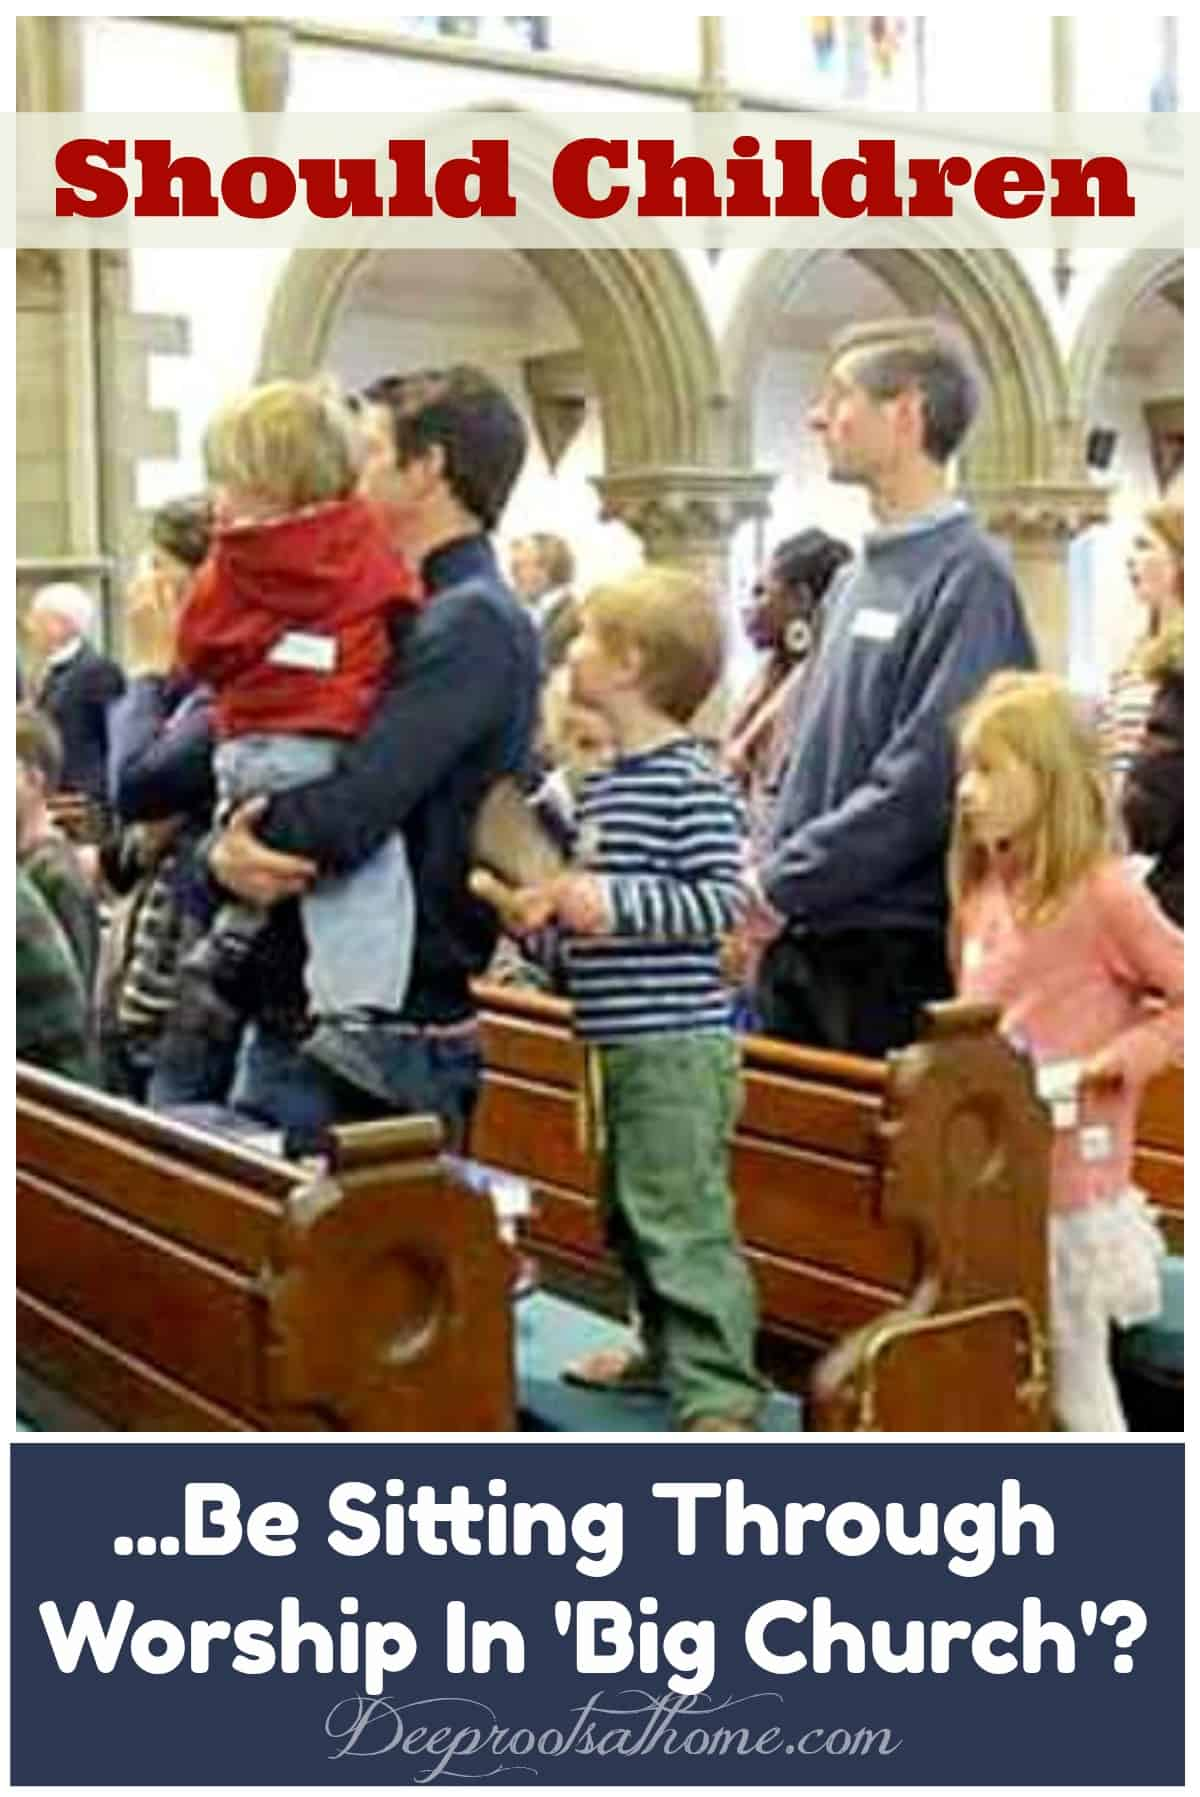 Should Children Be Sitting Through Worship In 'Big Church'? Children in the worship service with parents and families, paying attention.